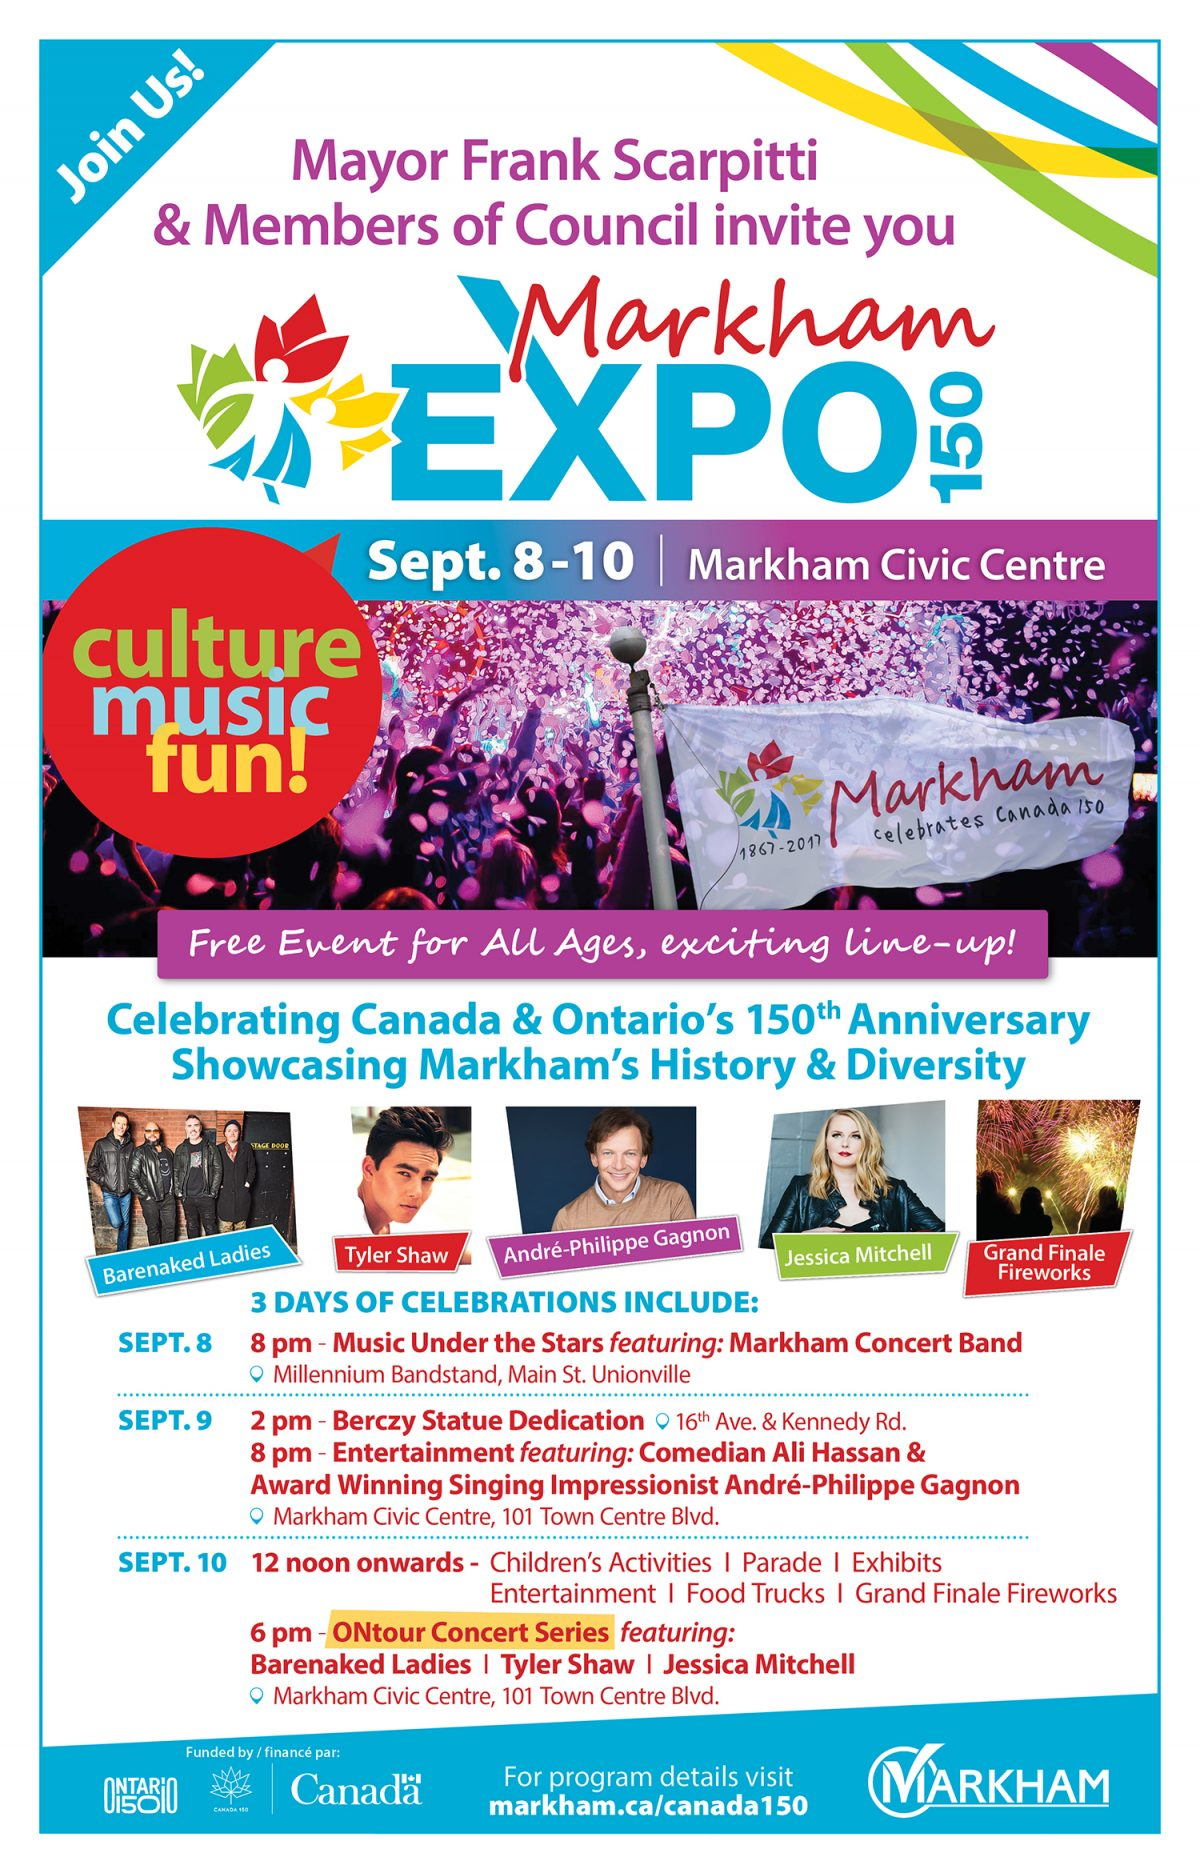 Mayor Frank Scarpitti and Members of Council Invite you to: Invitation to Markham Expo 150